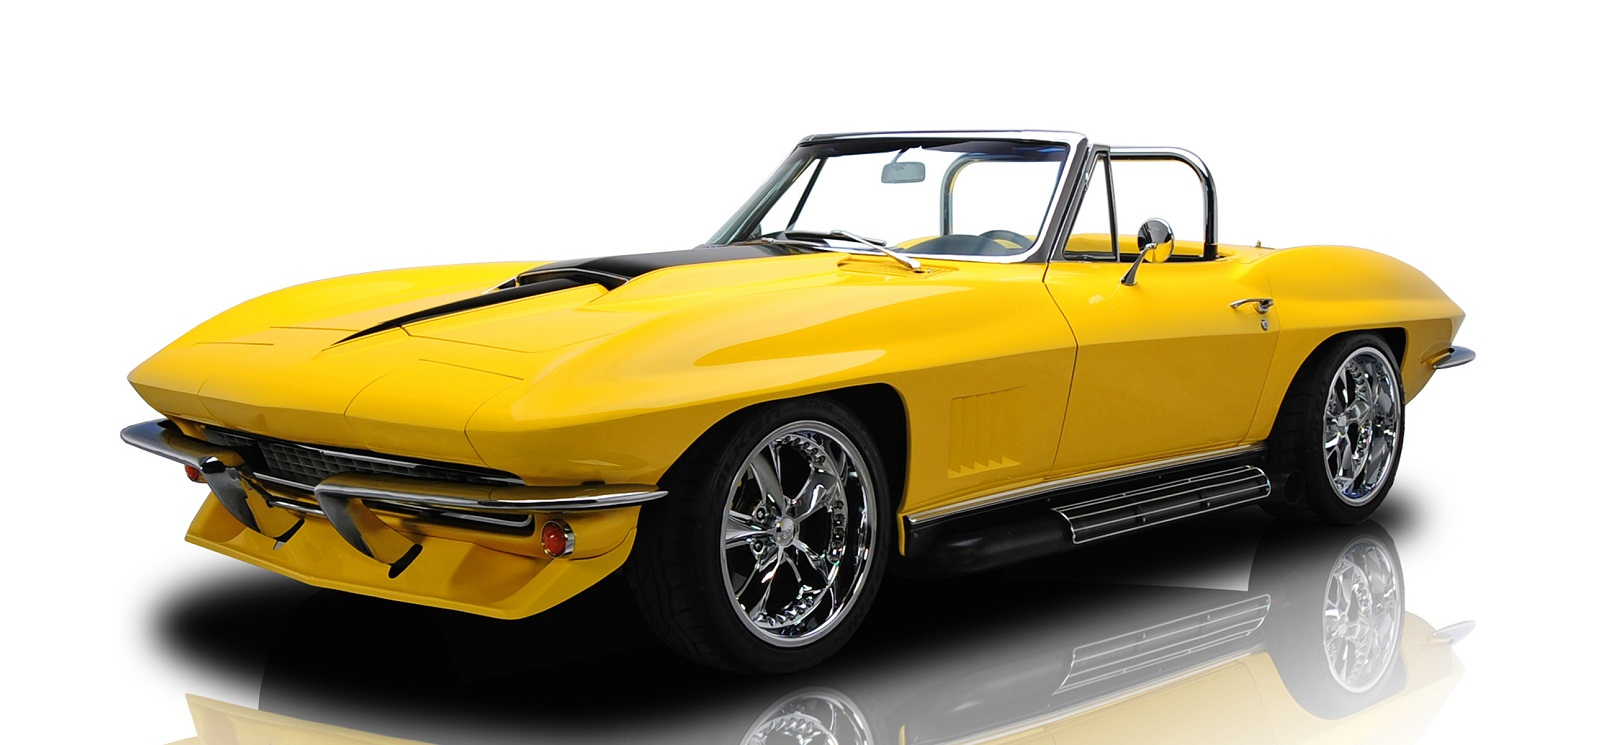 1967 Chevrolet Corvette Sting Ray Pro Touring | Top Speed